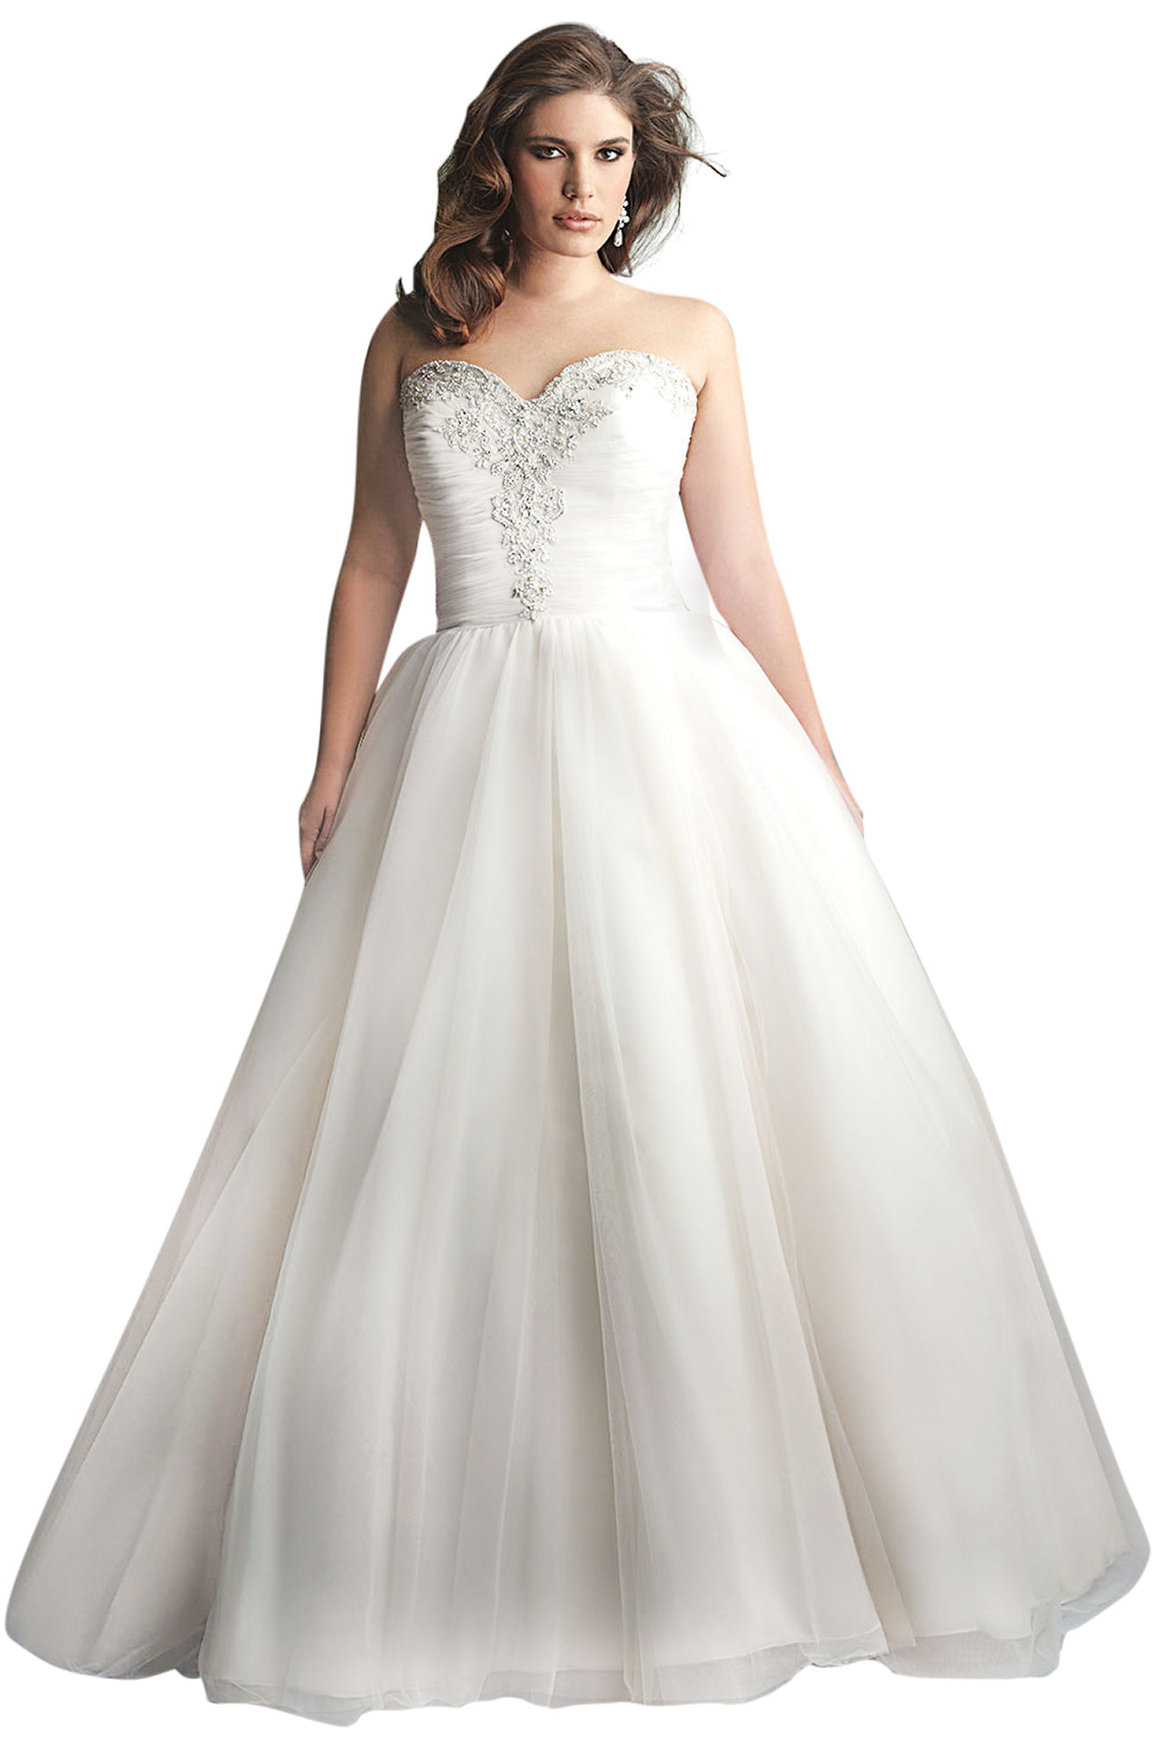 Best Style Of Wedding Dress For Body Type 121